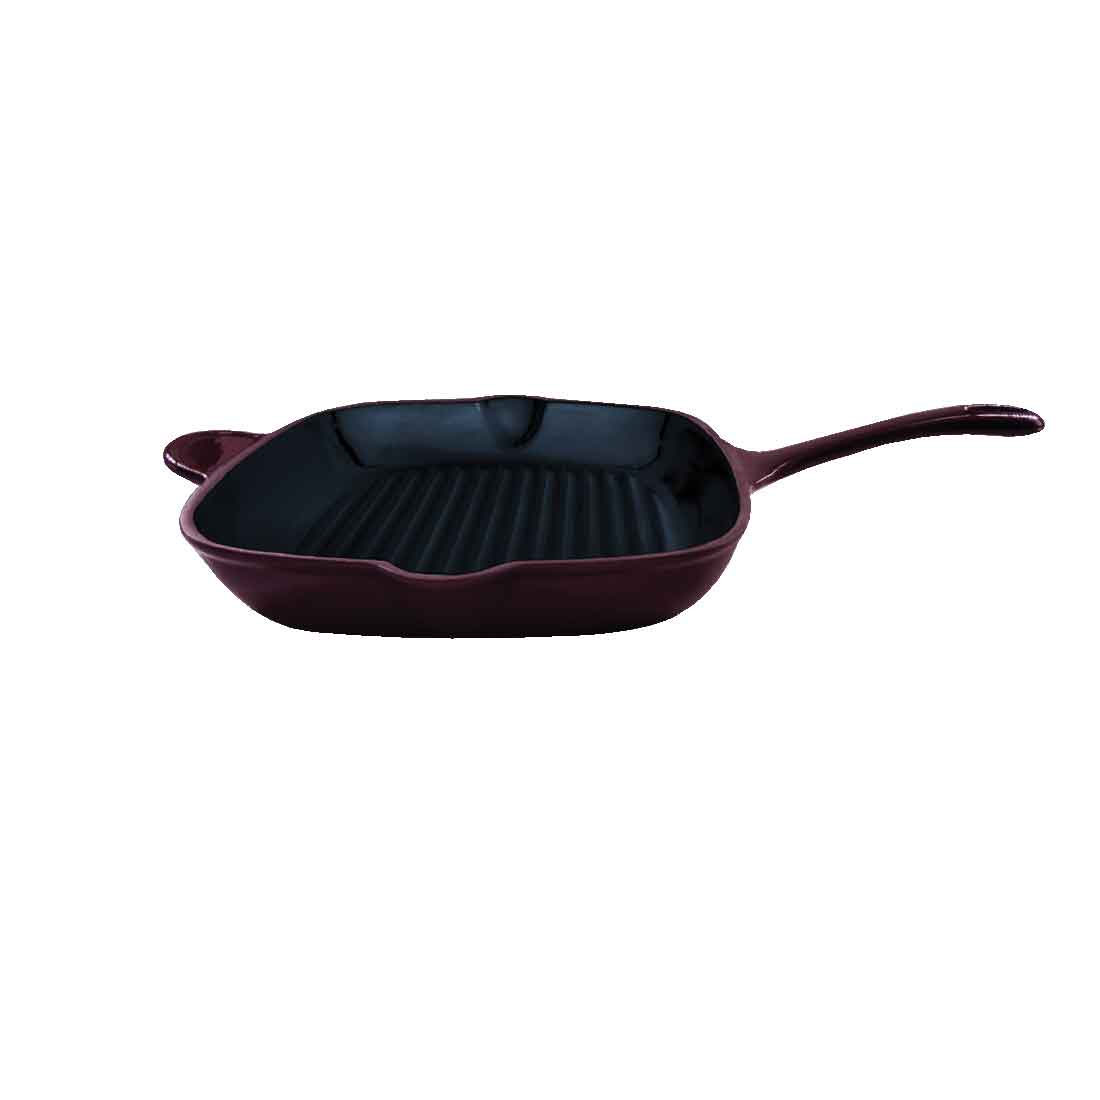 Wonderchef Ferro Cast Iron Grill Pan 29.5cm (Majolica Red)